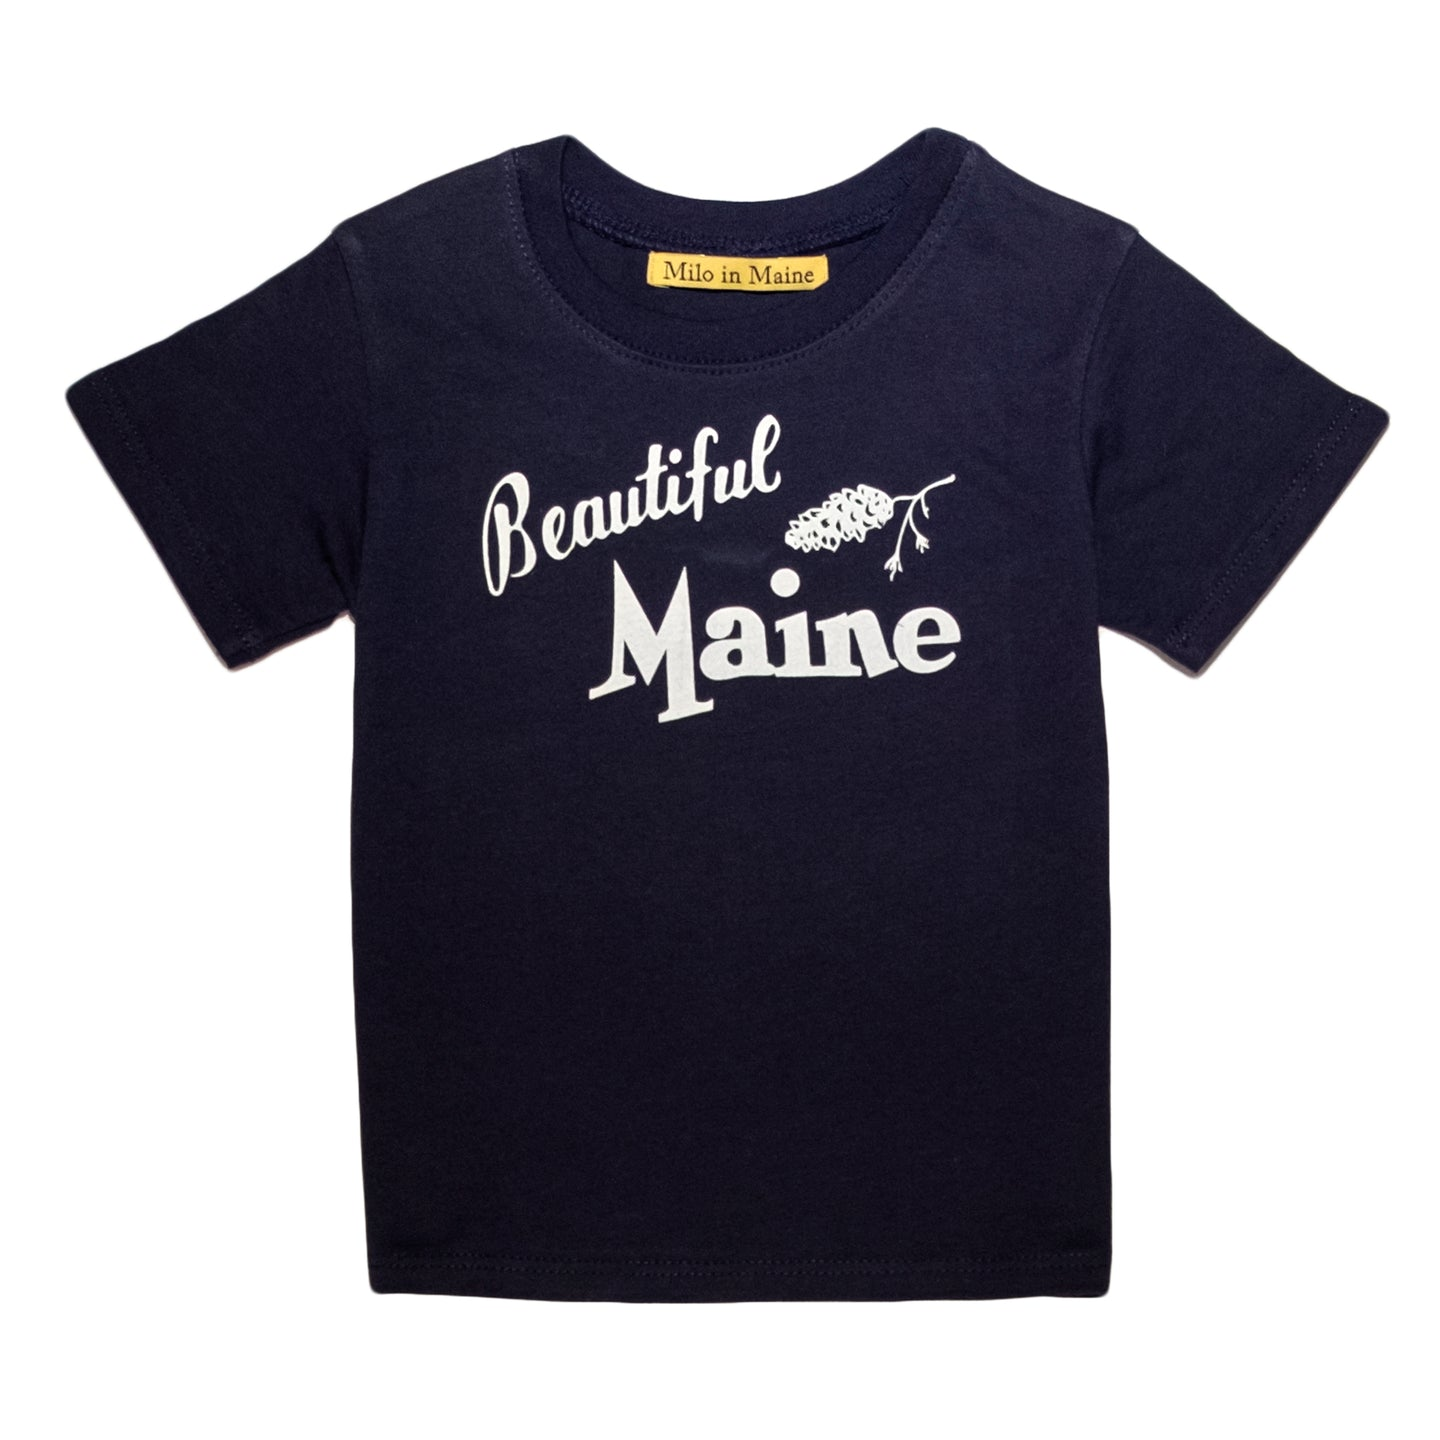 Beautiful Maine Tee